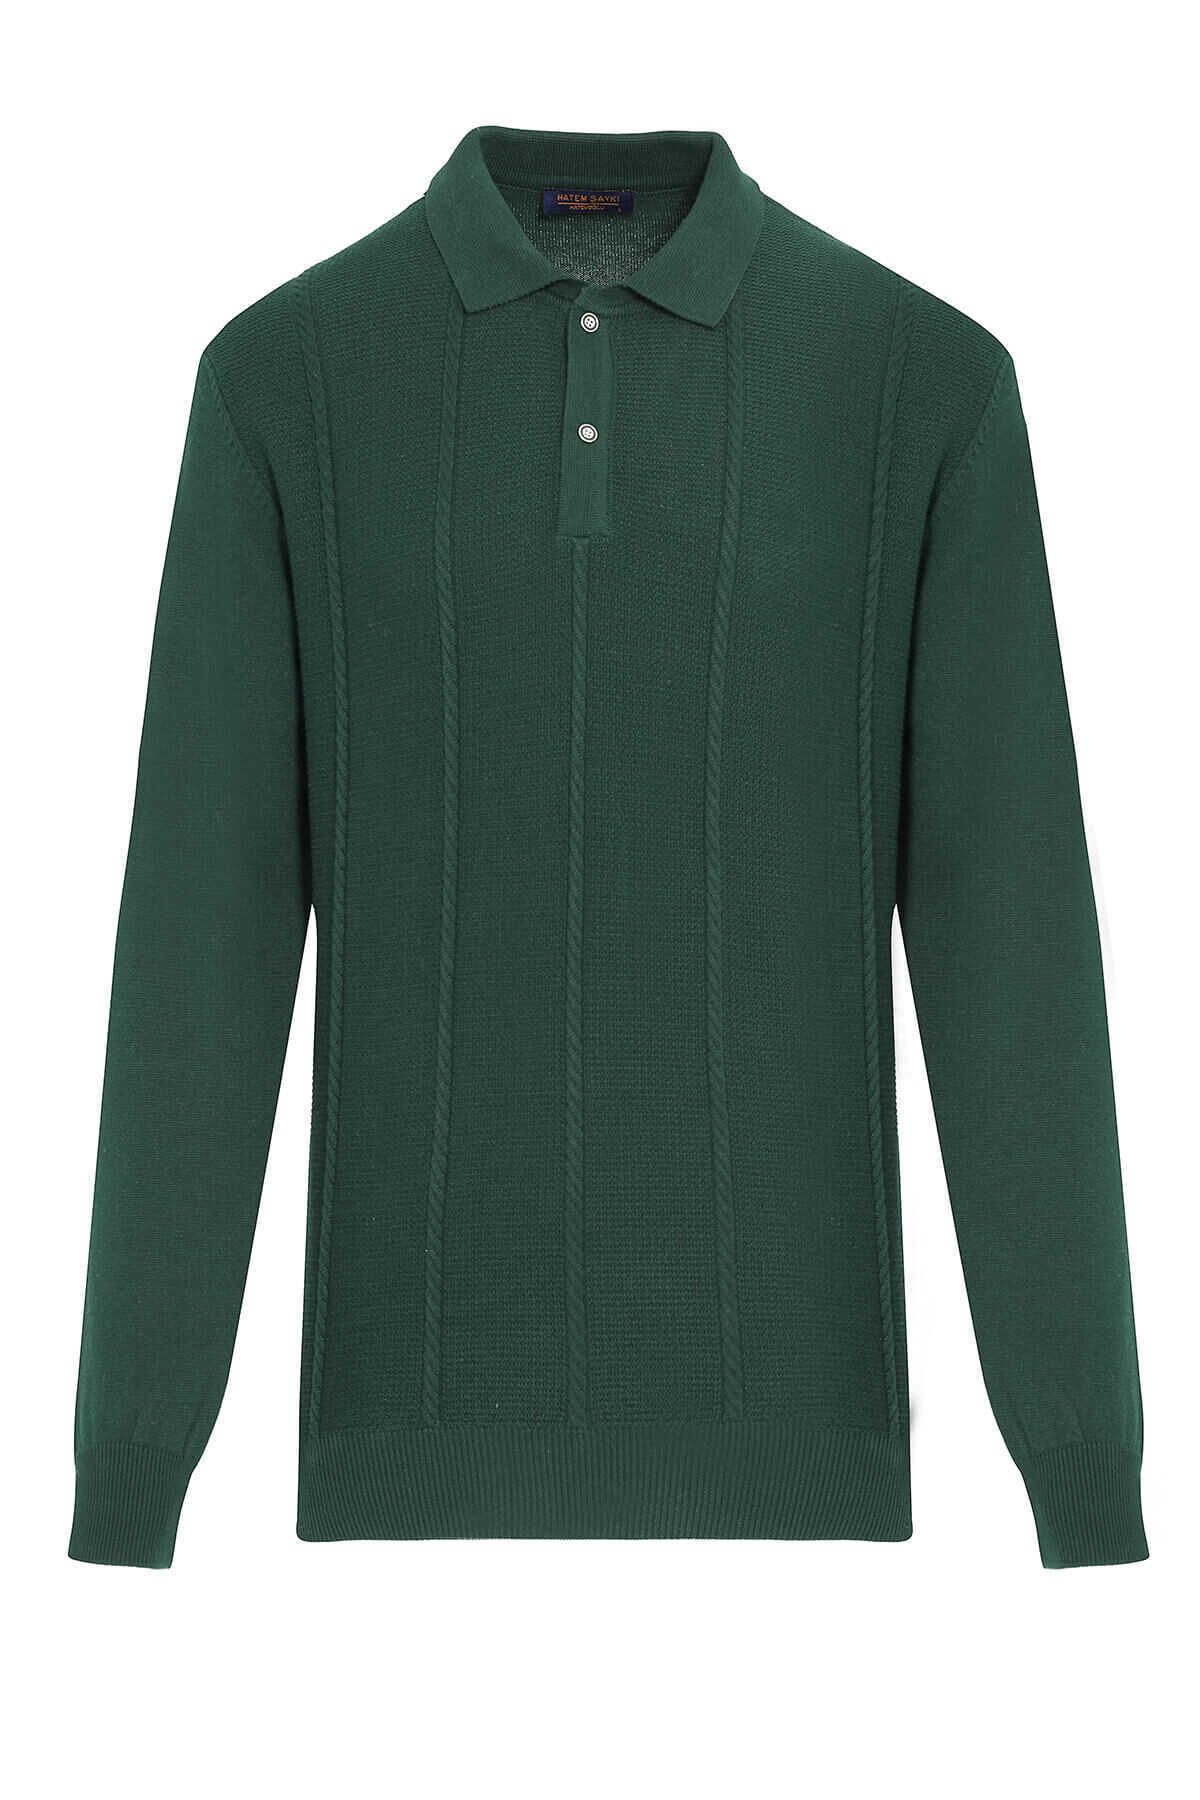 - Green Polo Neck Buttoned Sweater